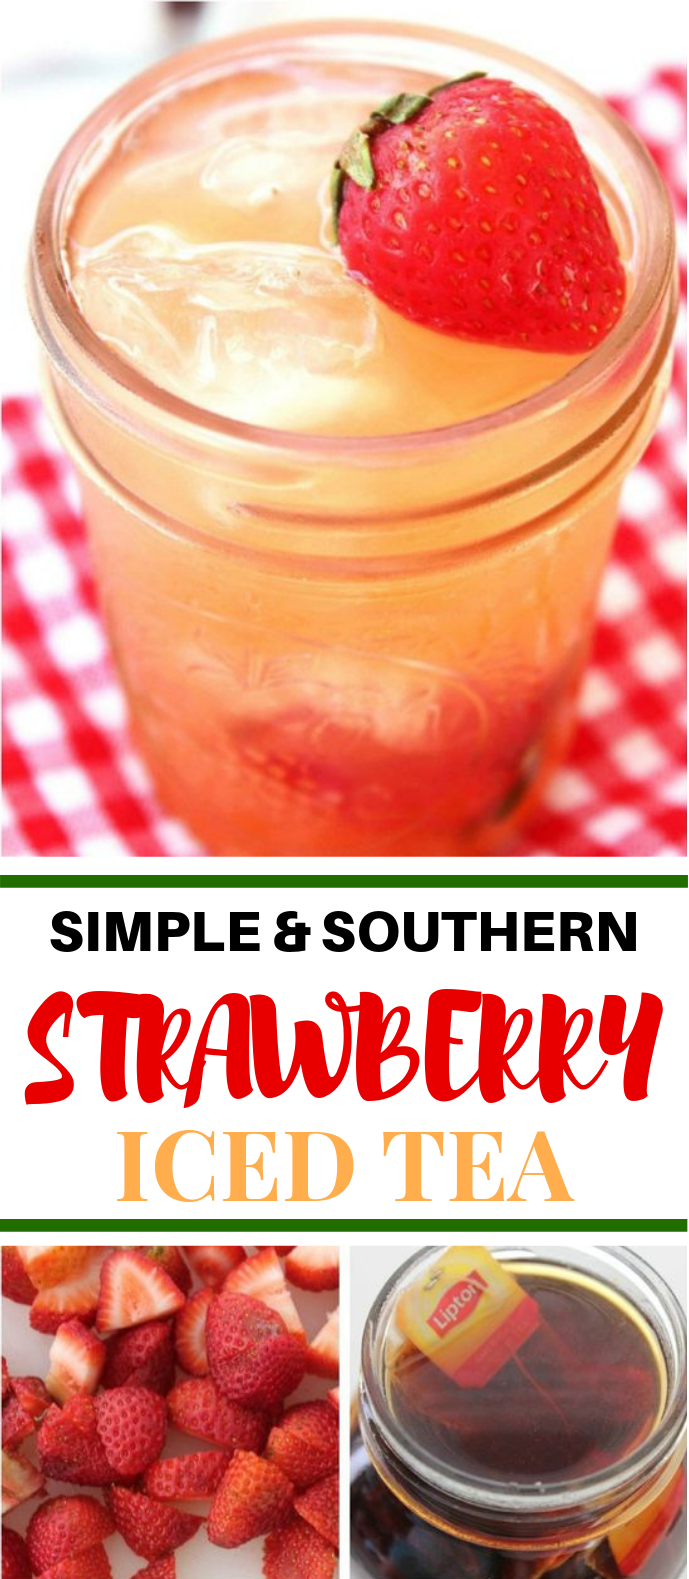 SIMPLE & SOUTHERN STRAWBERRY SWEET TEA #Drink #Summer